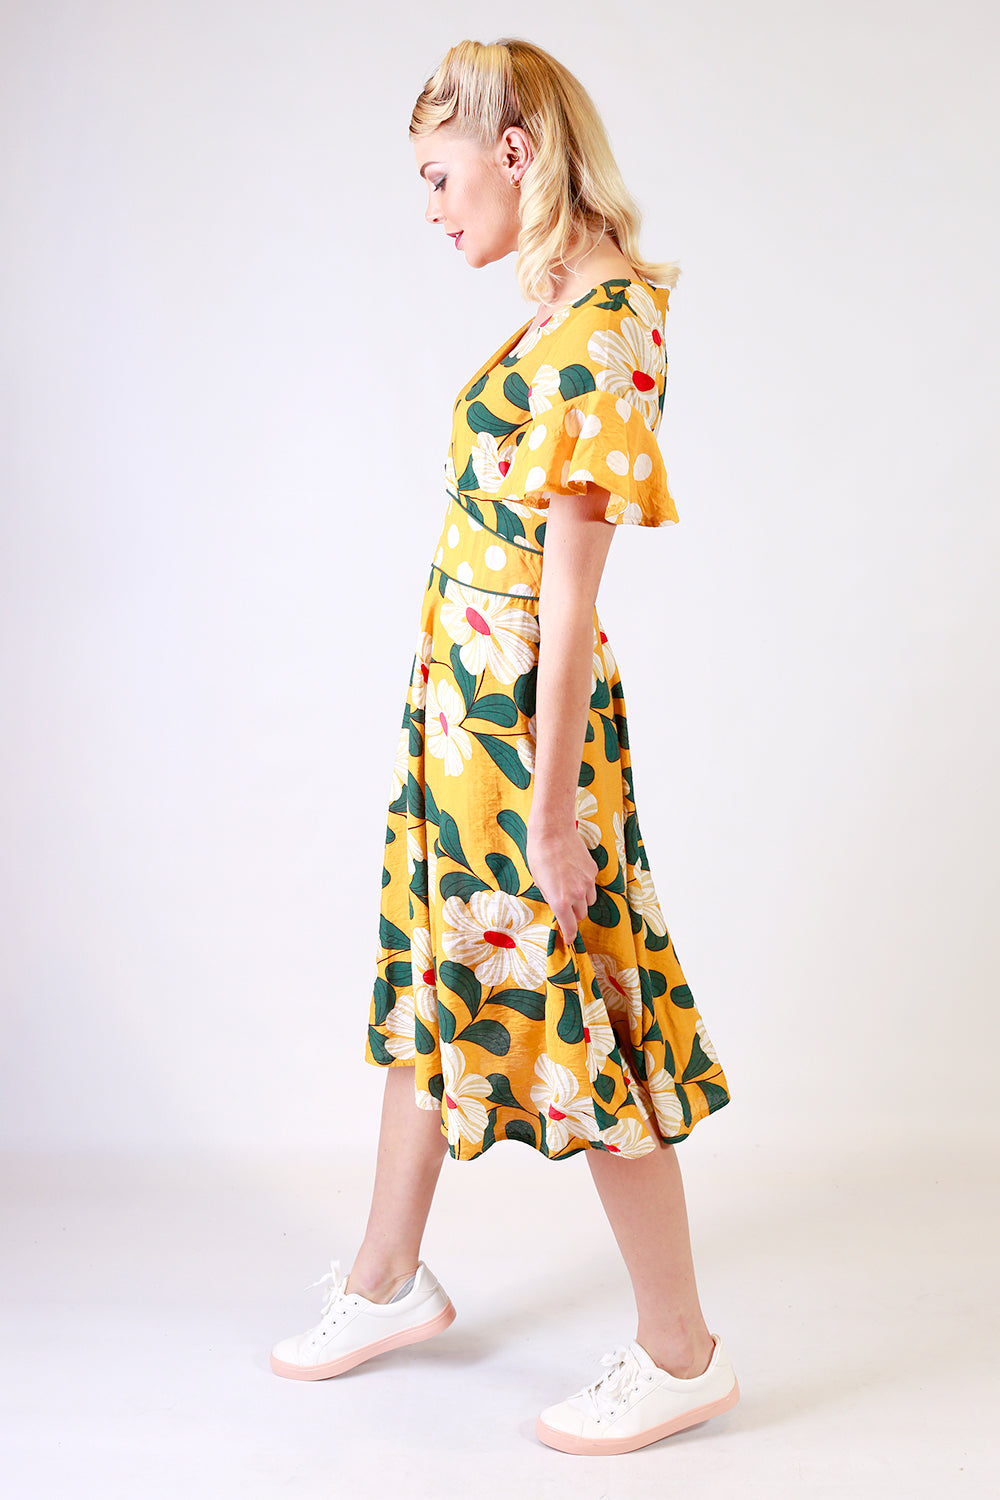 Tillys Corner Dress | Mid Length Dresses NZ | Designer Fashion NZ | Floral Dresses NZ